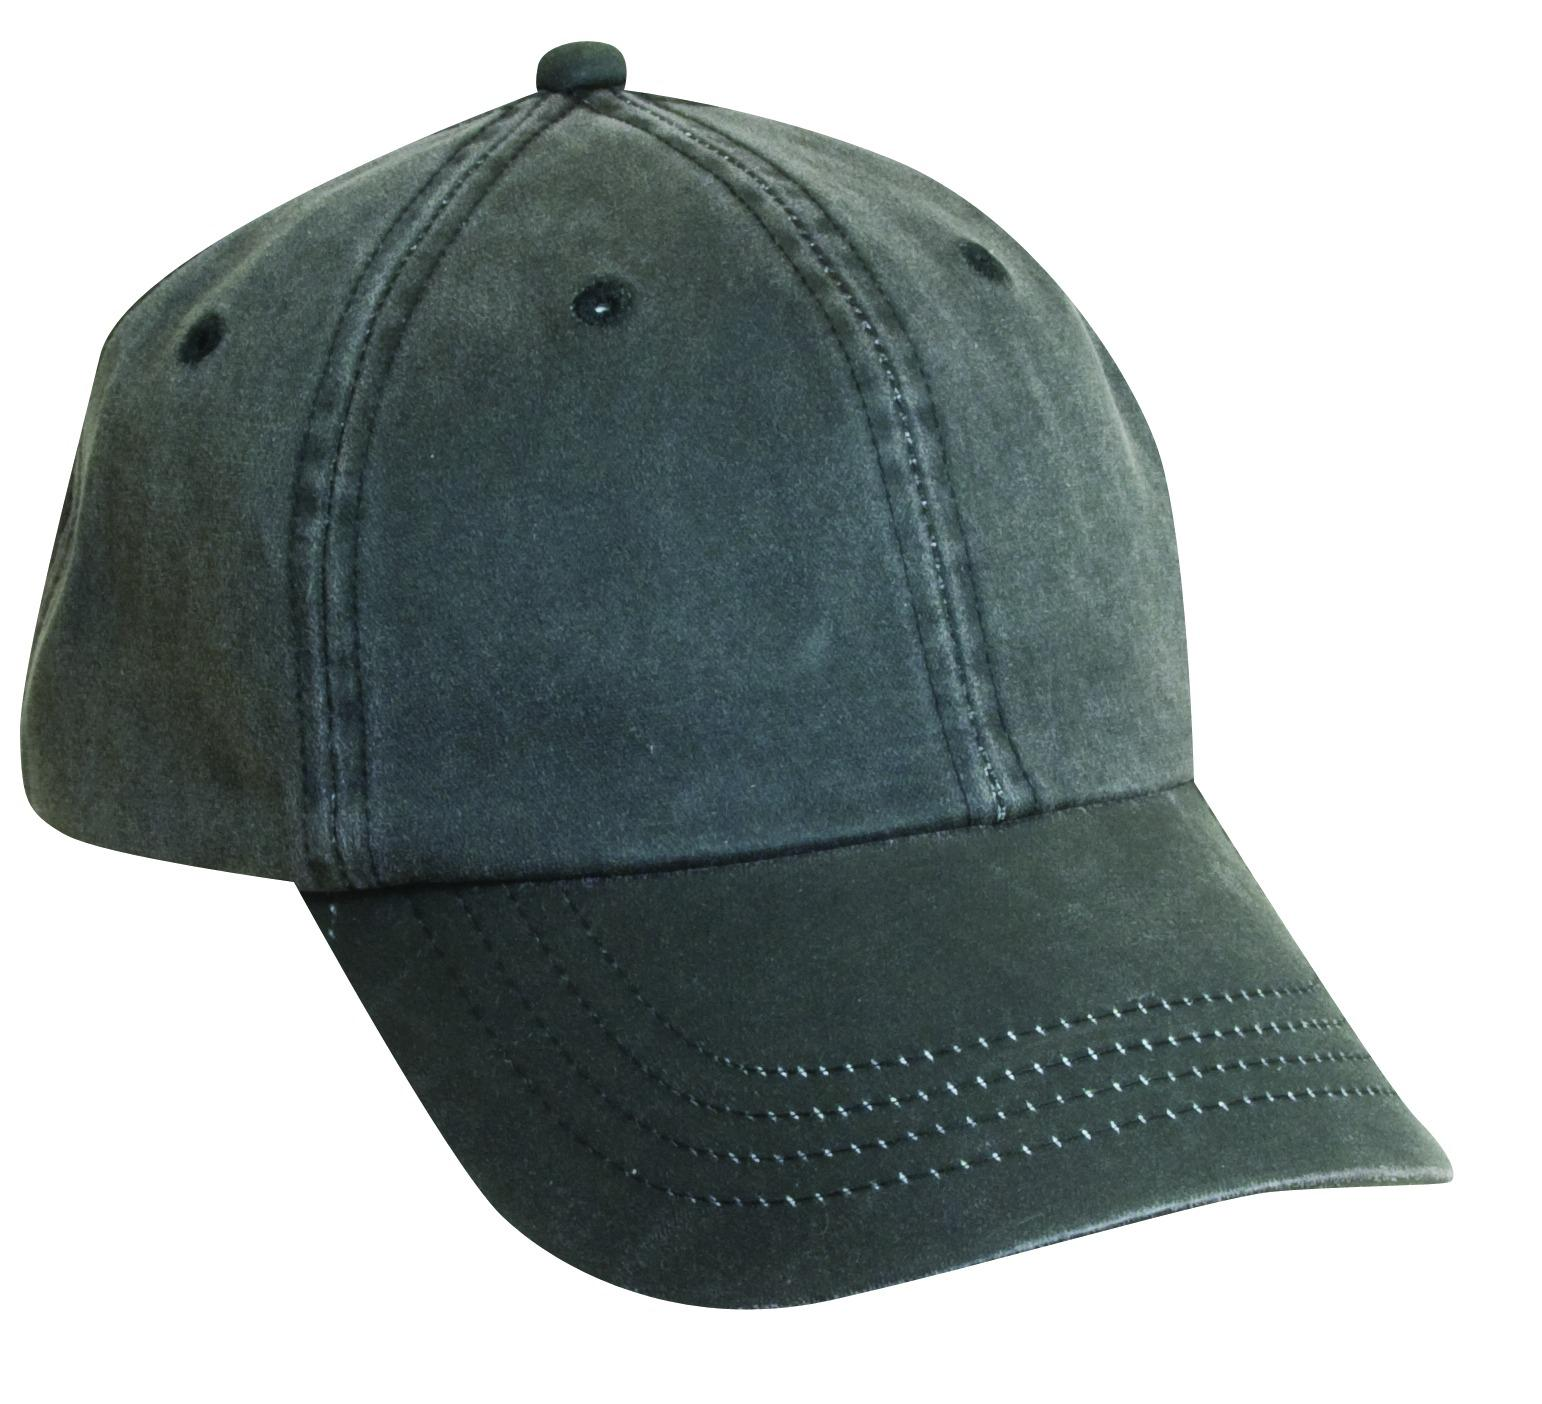 DPC_Outdoor_Design_Weathered_Cotton_UPF_50_Adjustable_Baseball_Hat_-